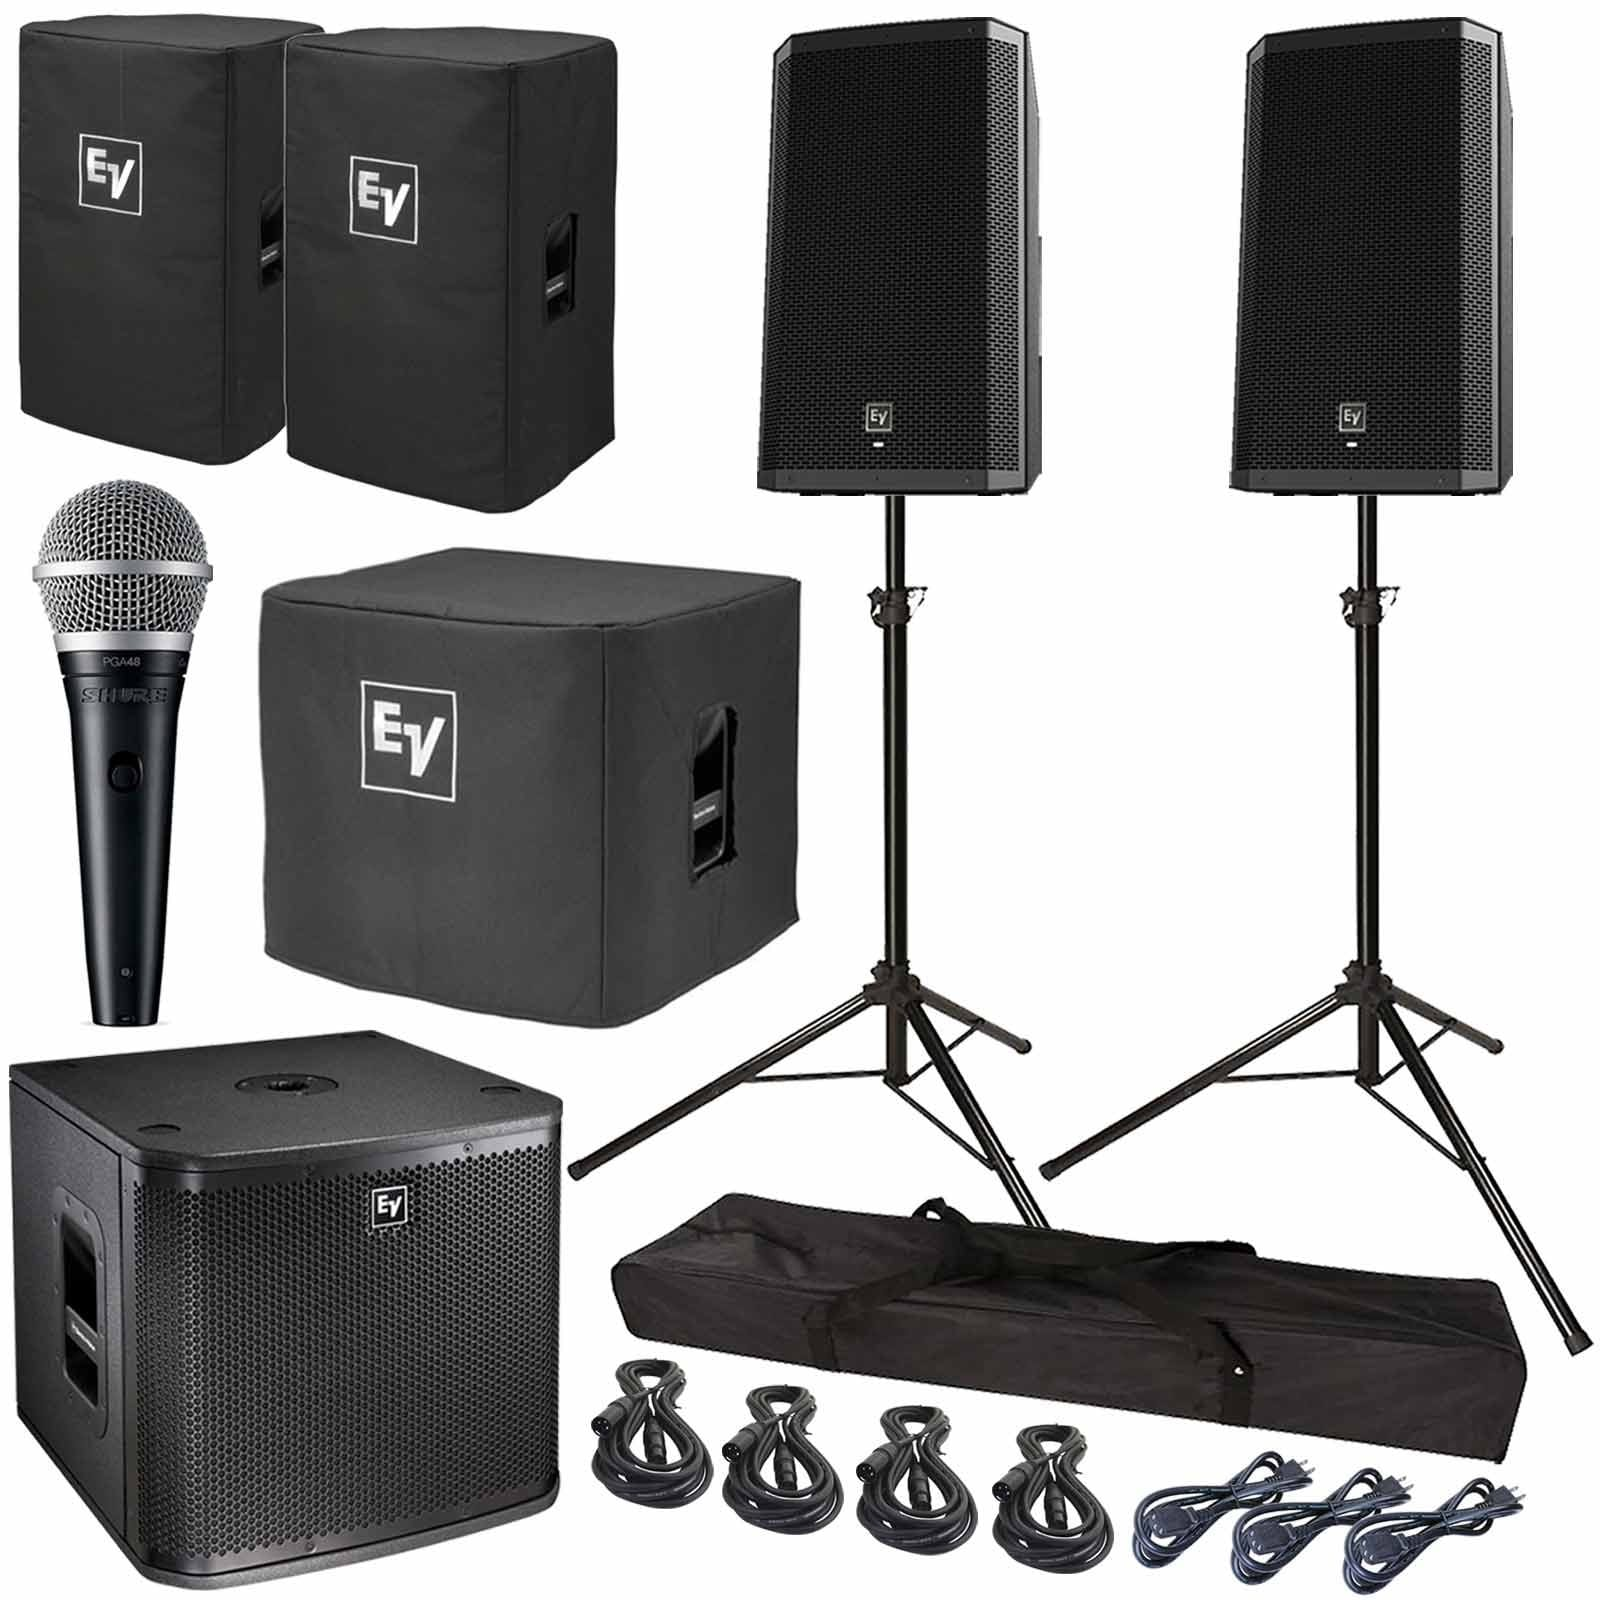 electro-voice-zlx-12p-12-powered-speaker-subwoofer-package-283